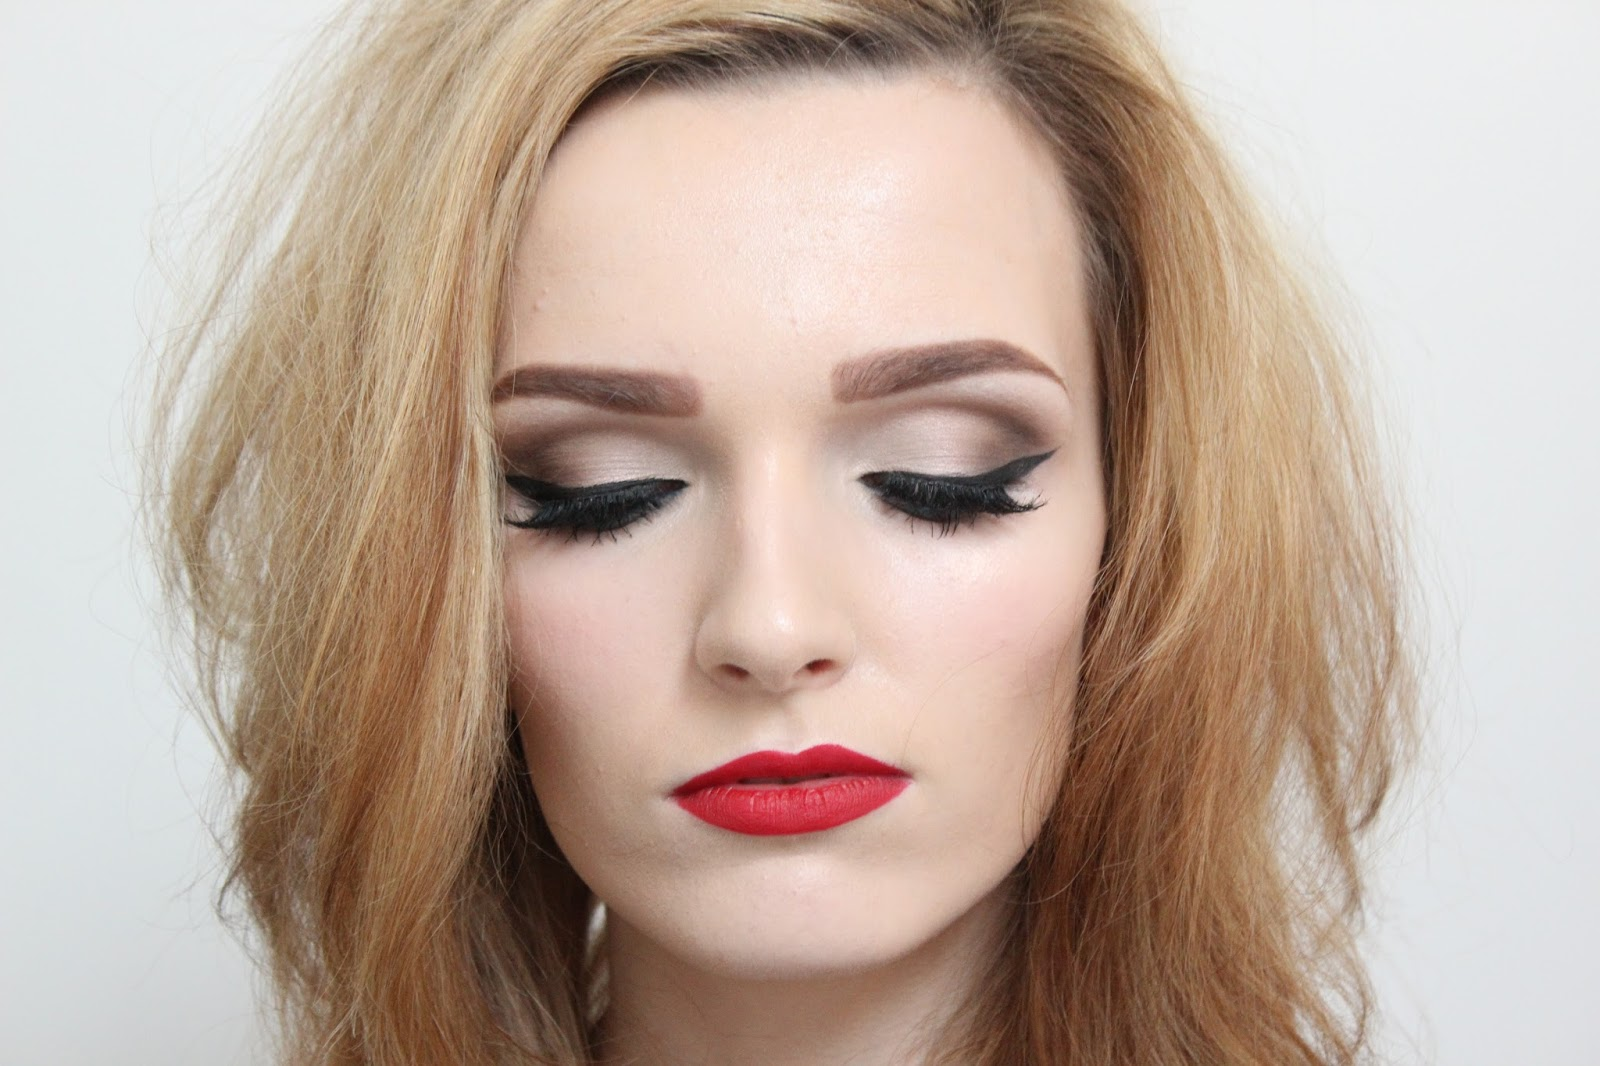 Coleyyyful: A Beauty & Fashion Blog: 1950's Inspired Prom